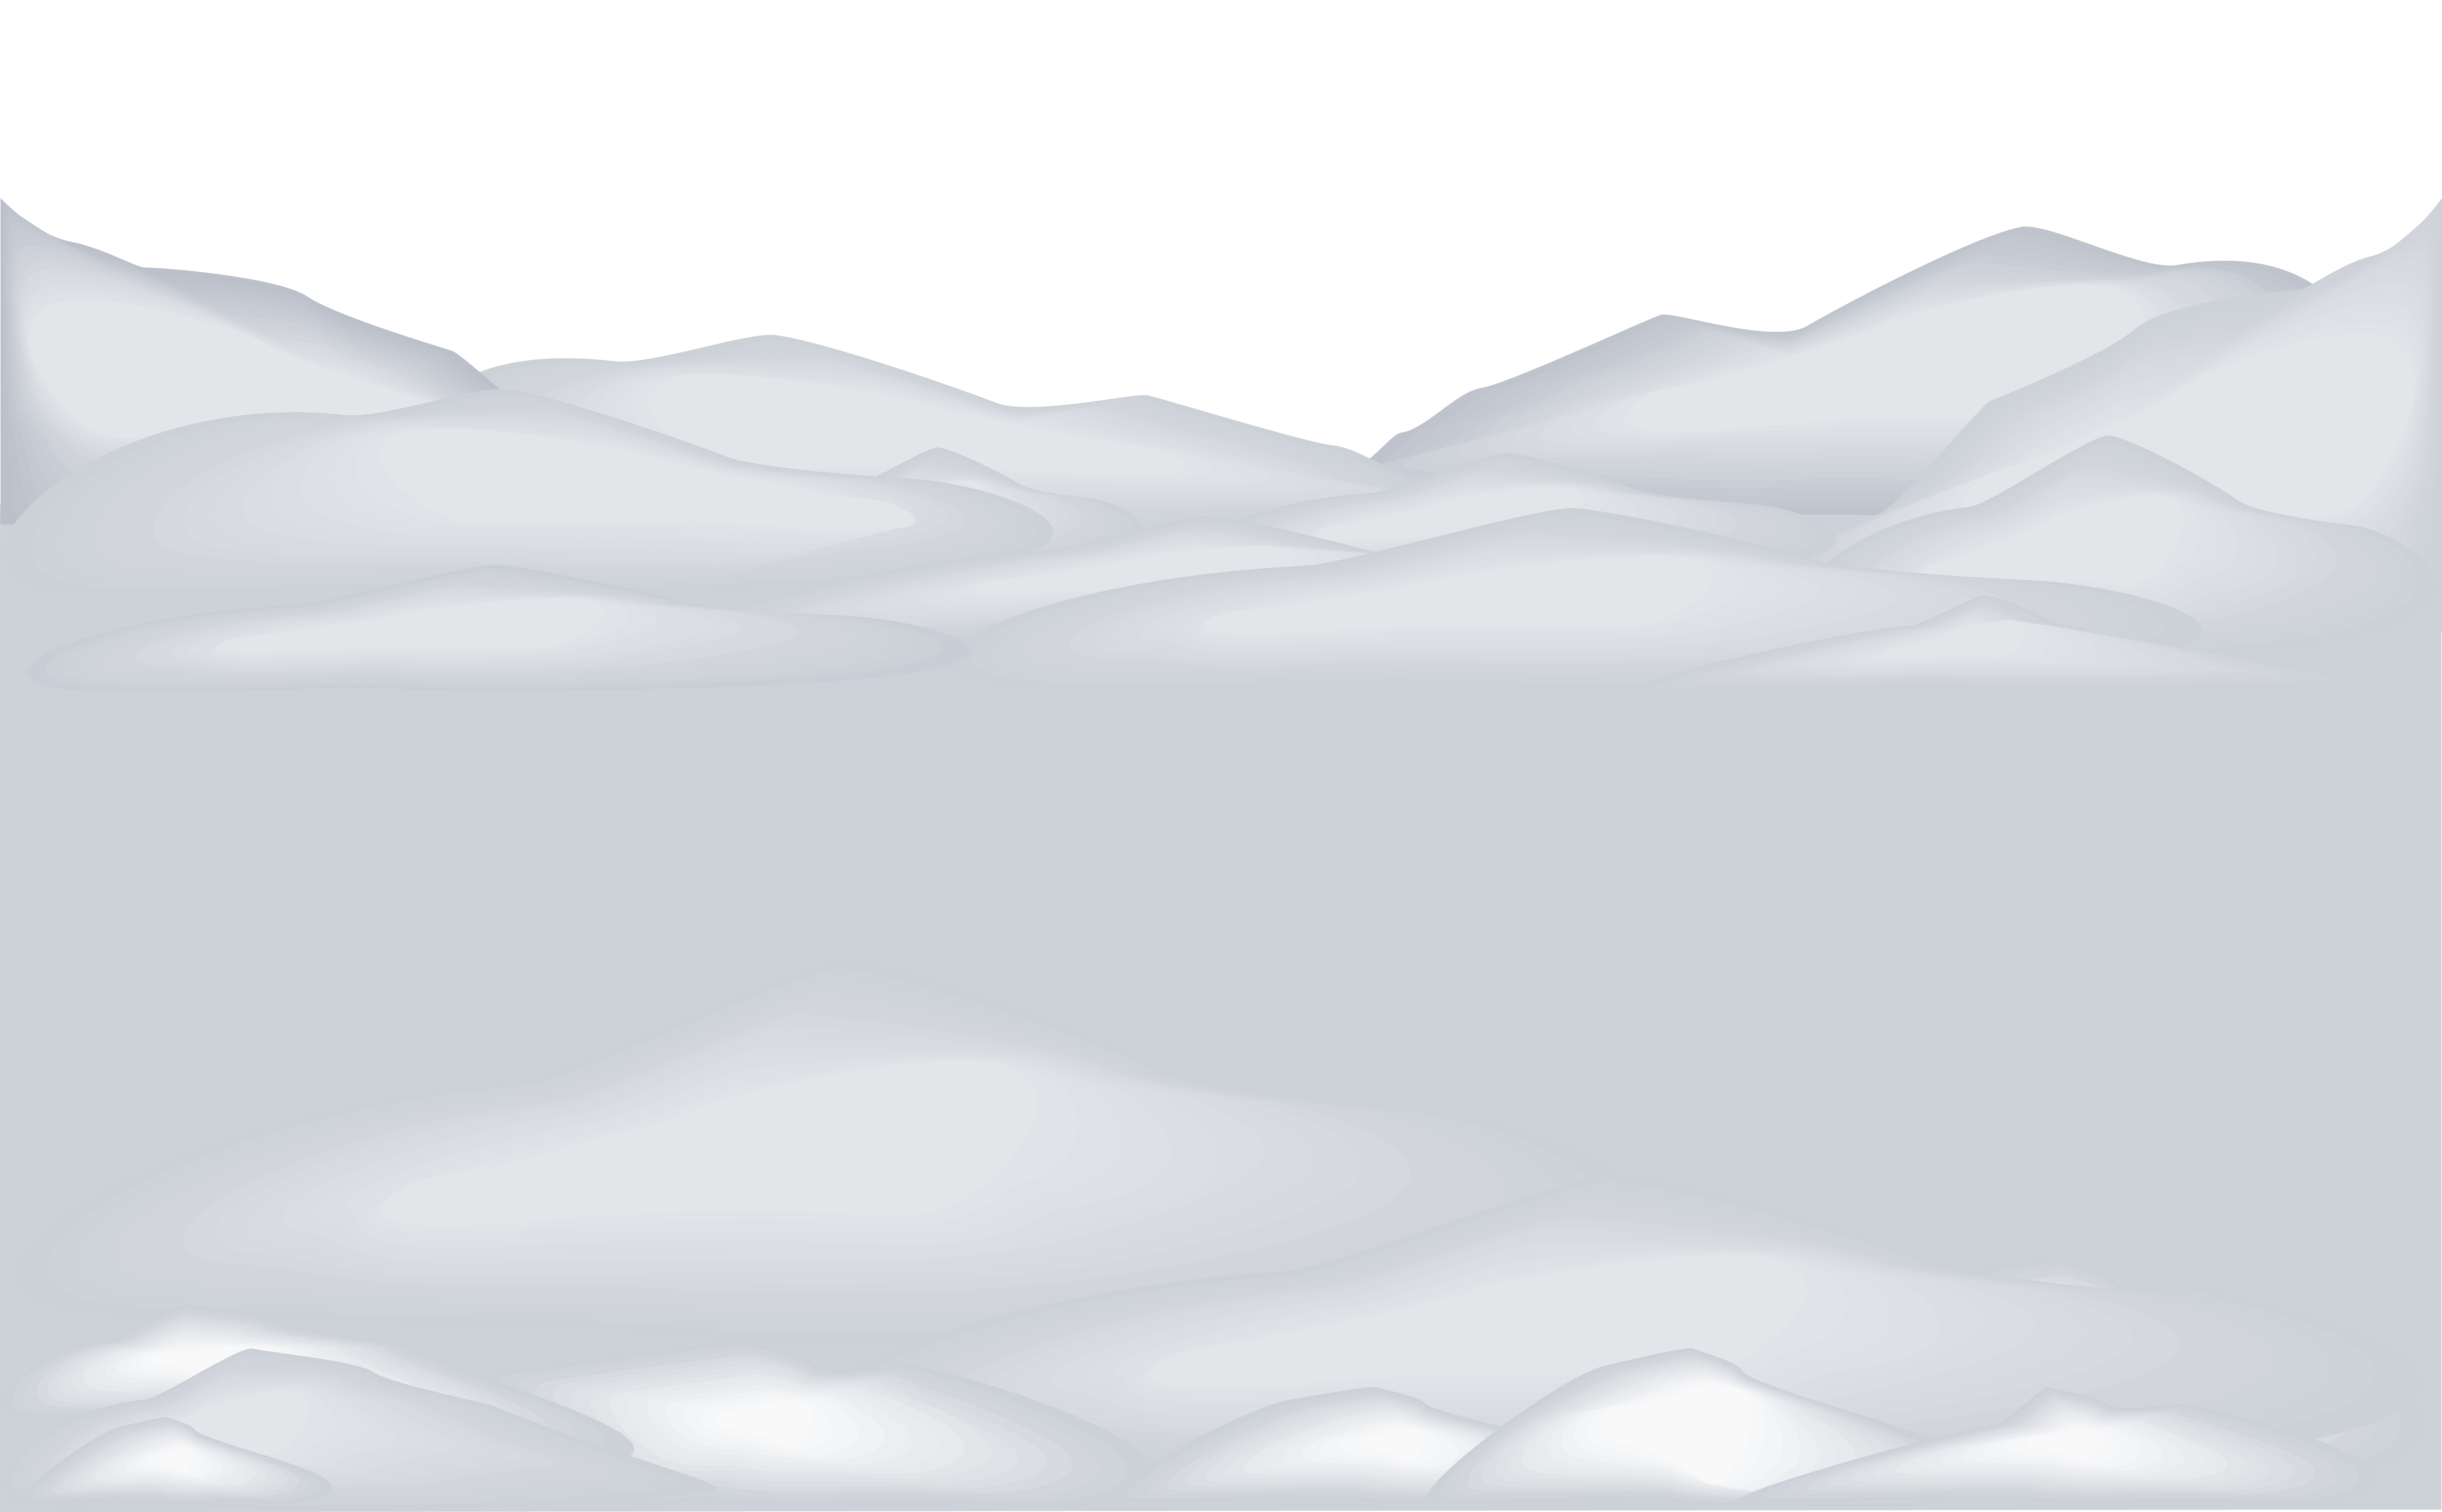 Transparent snowfall winter. Free snow cliparts download